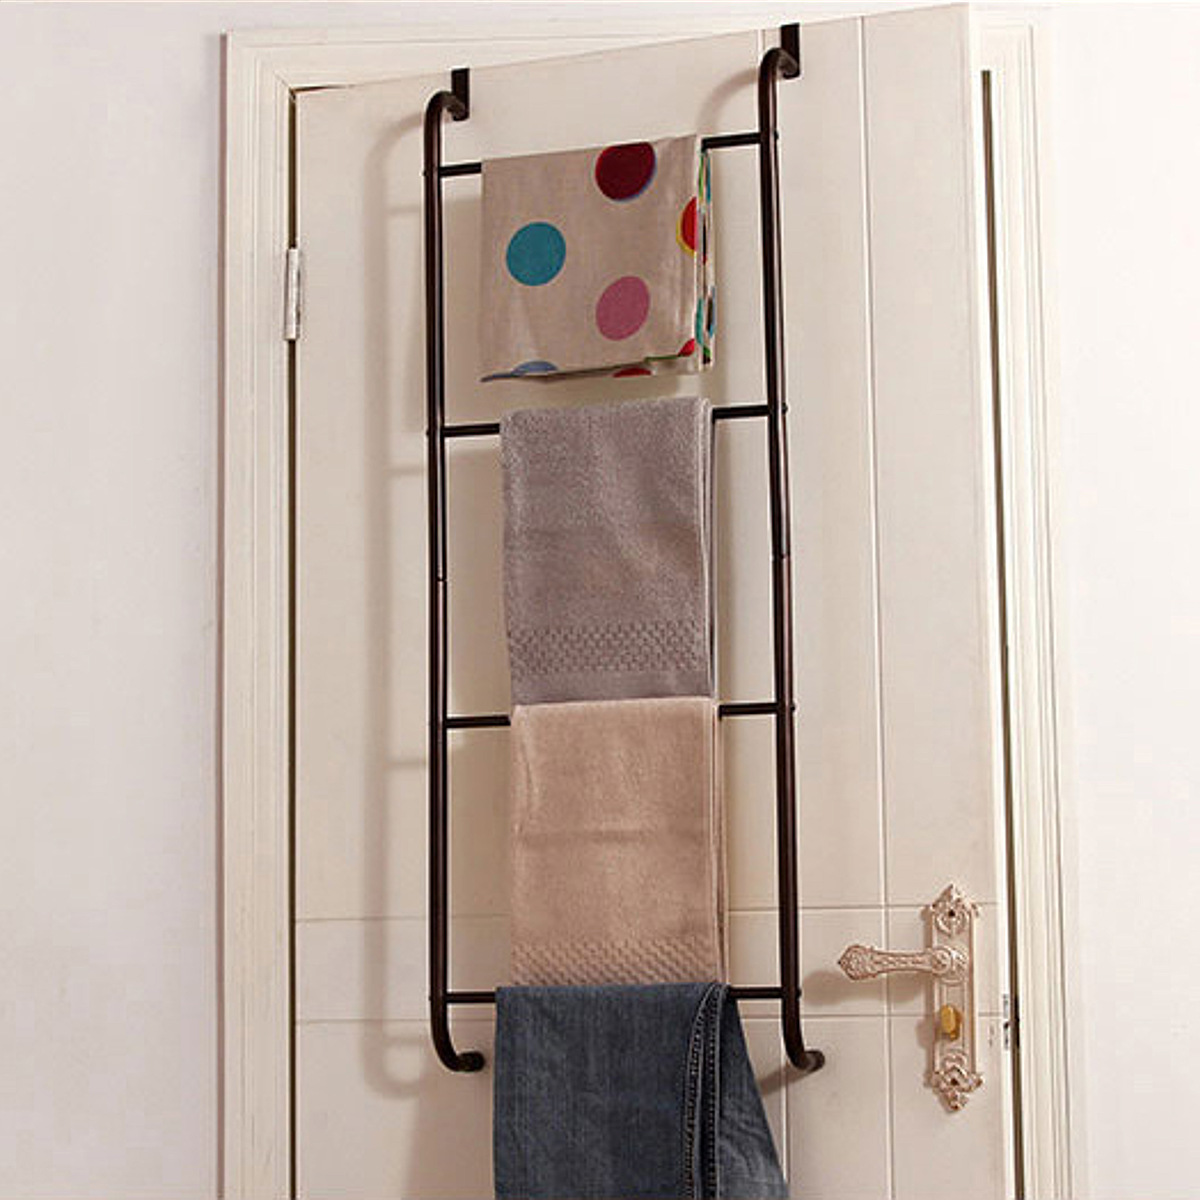 over the door towel rack bathroom or shower door 4 bar hanging holder for towels washcloths or clothes space saving storage accessory new